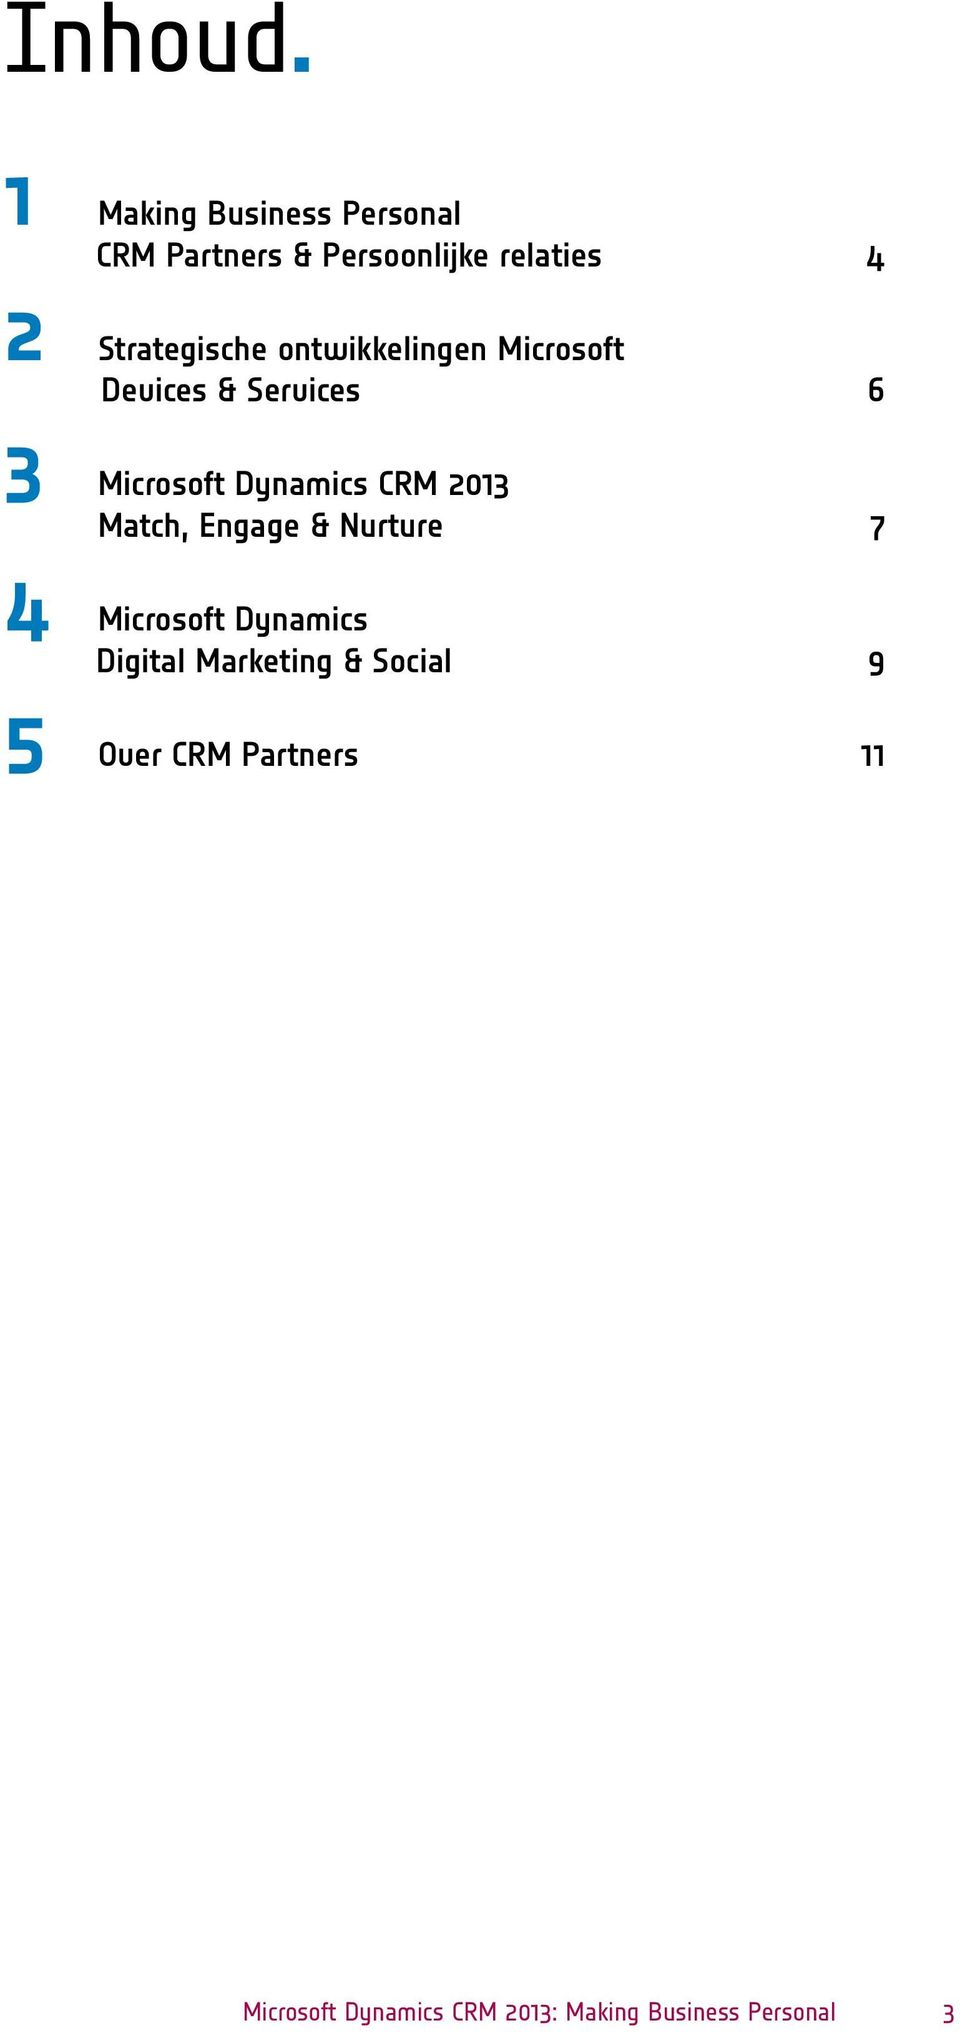 Strategische ontwikkelingen Microsoft Devices & Services 6 3 Microsoft Dynamics